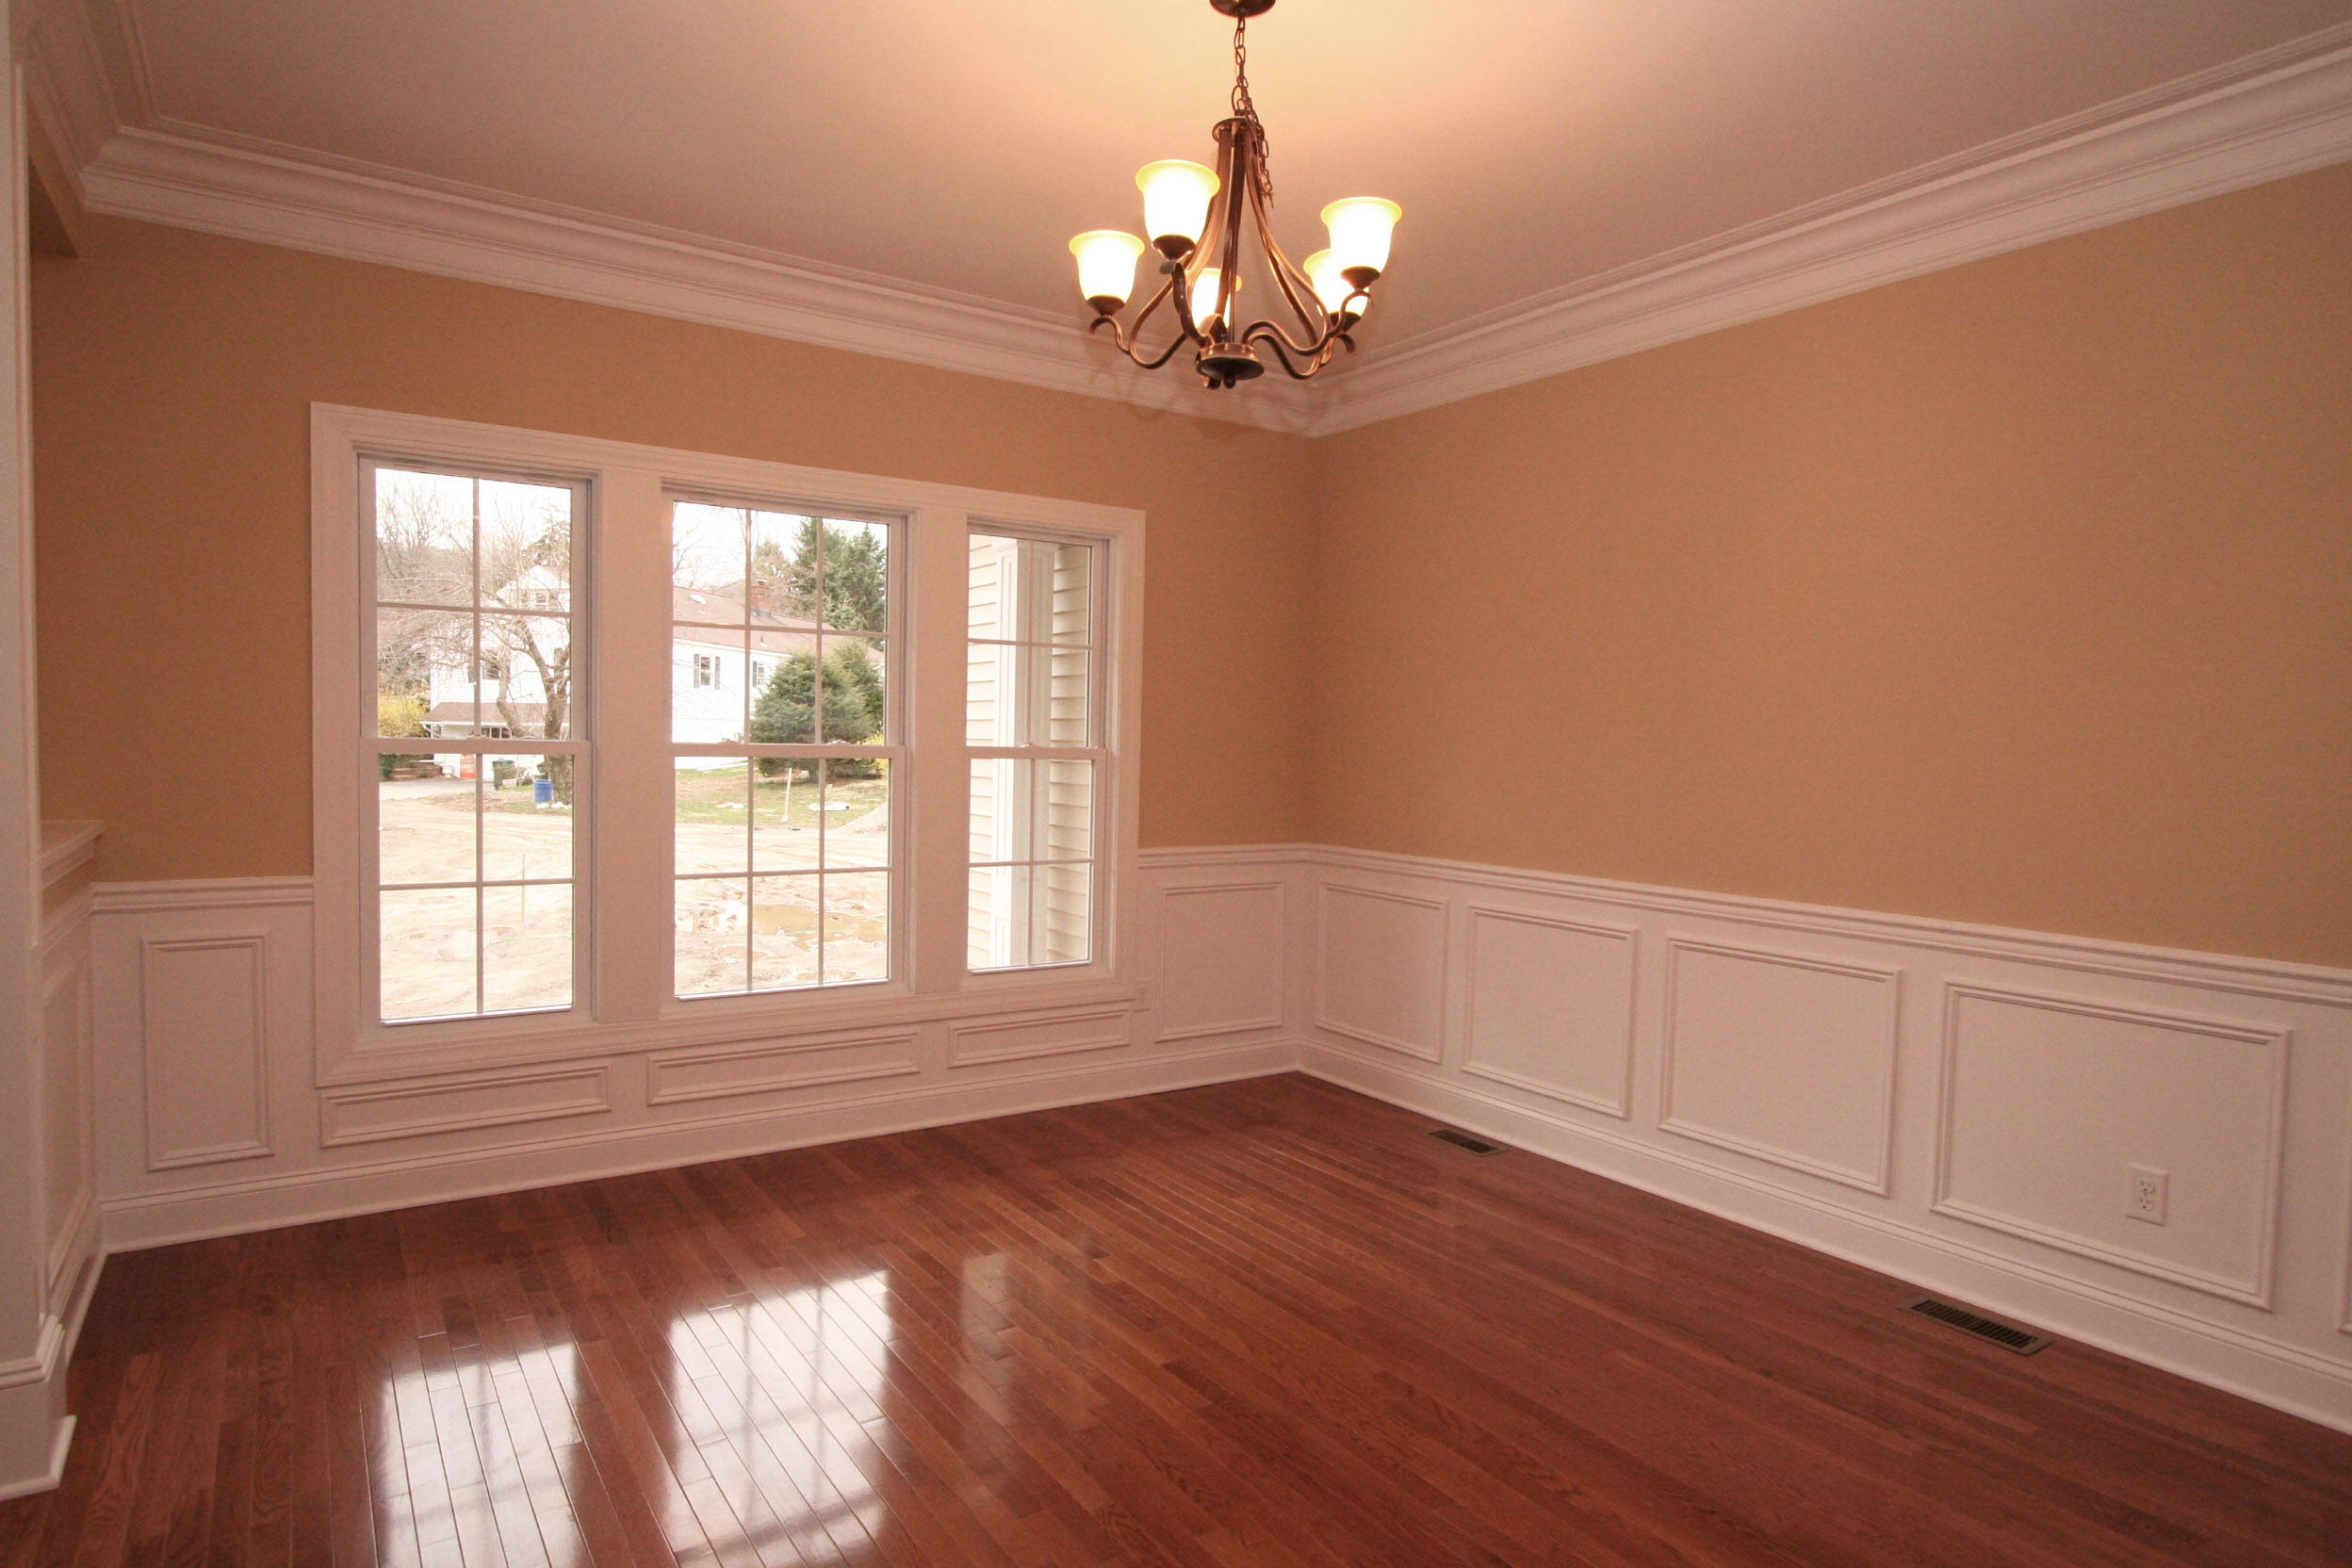 Flooring moldings and ceiling tile installers in fort lauderdale dinrm2 dailygadgetfo Choice Image